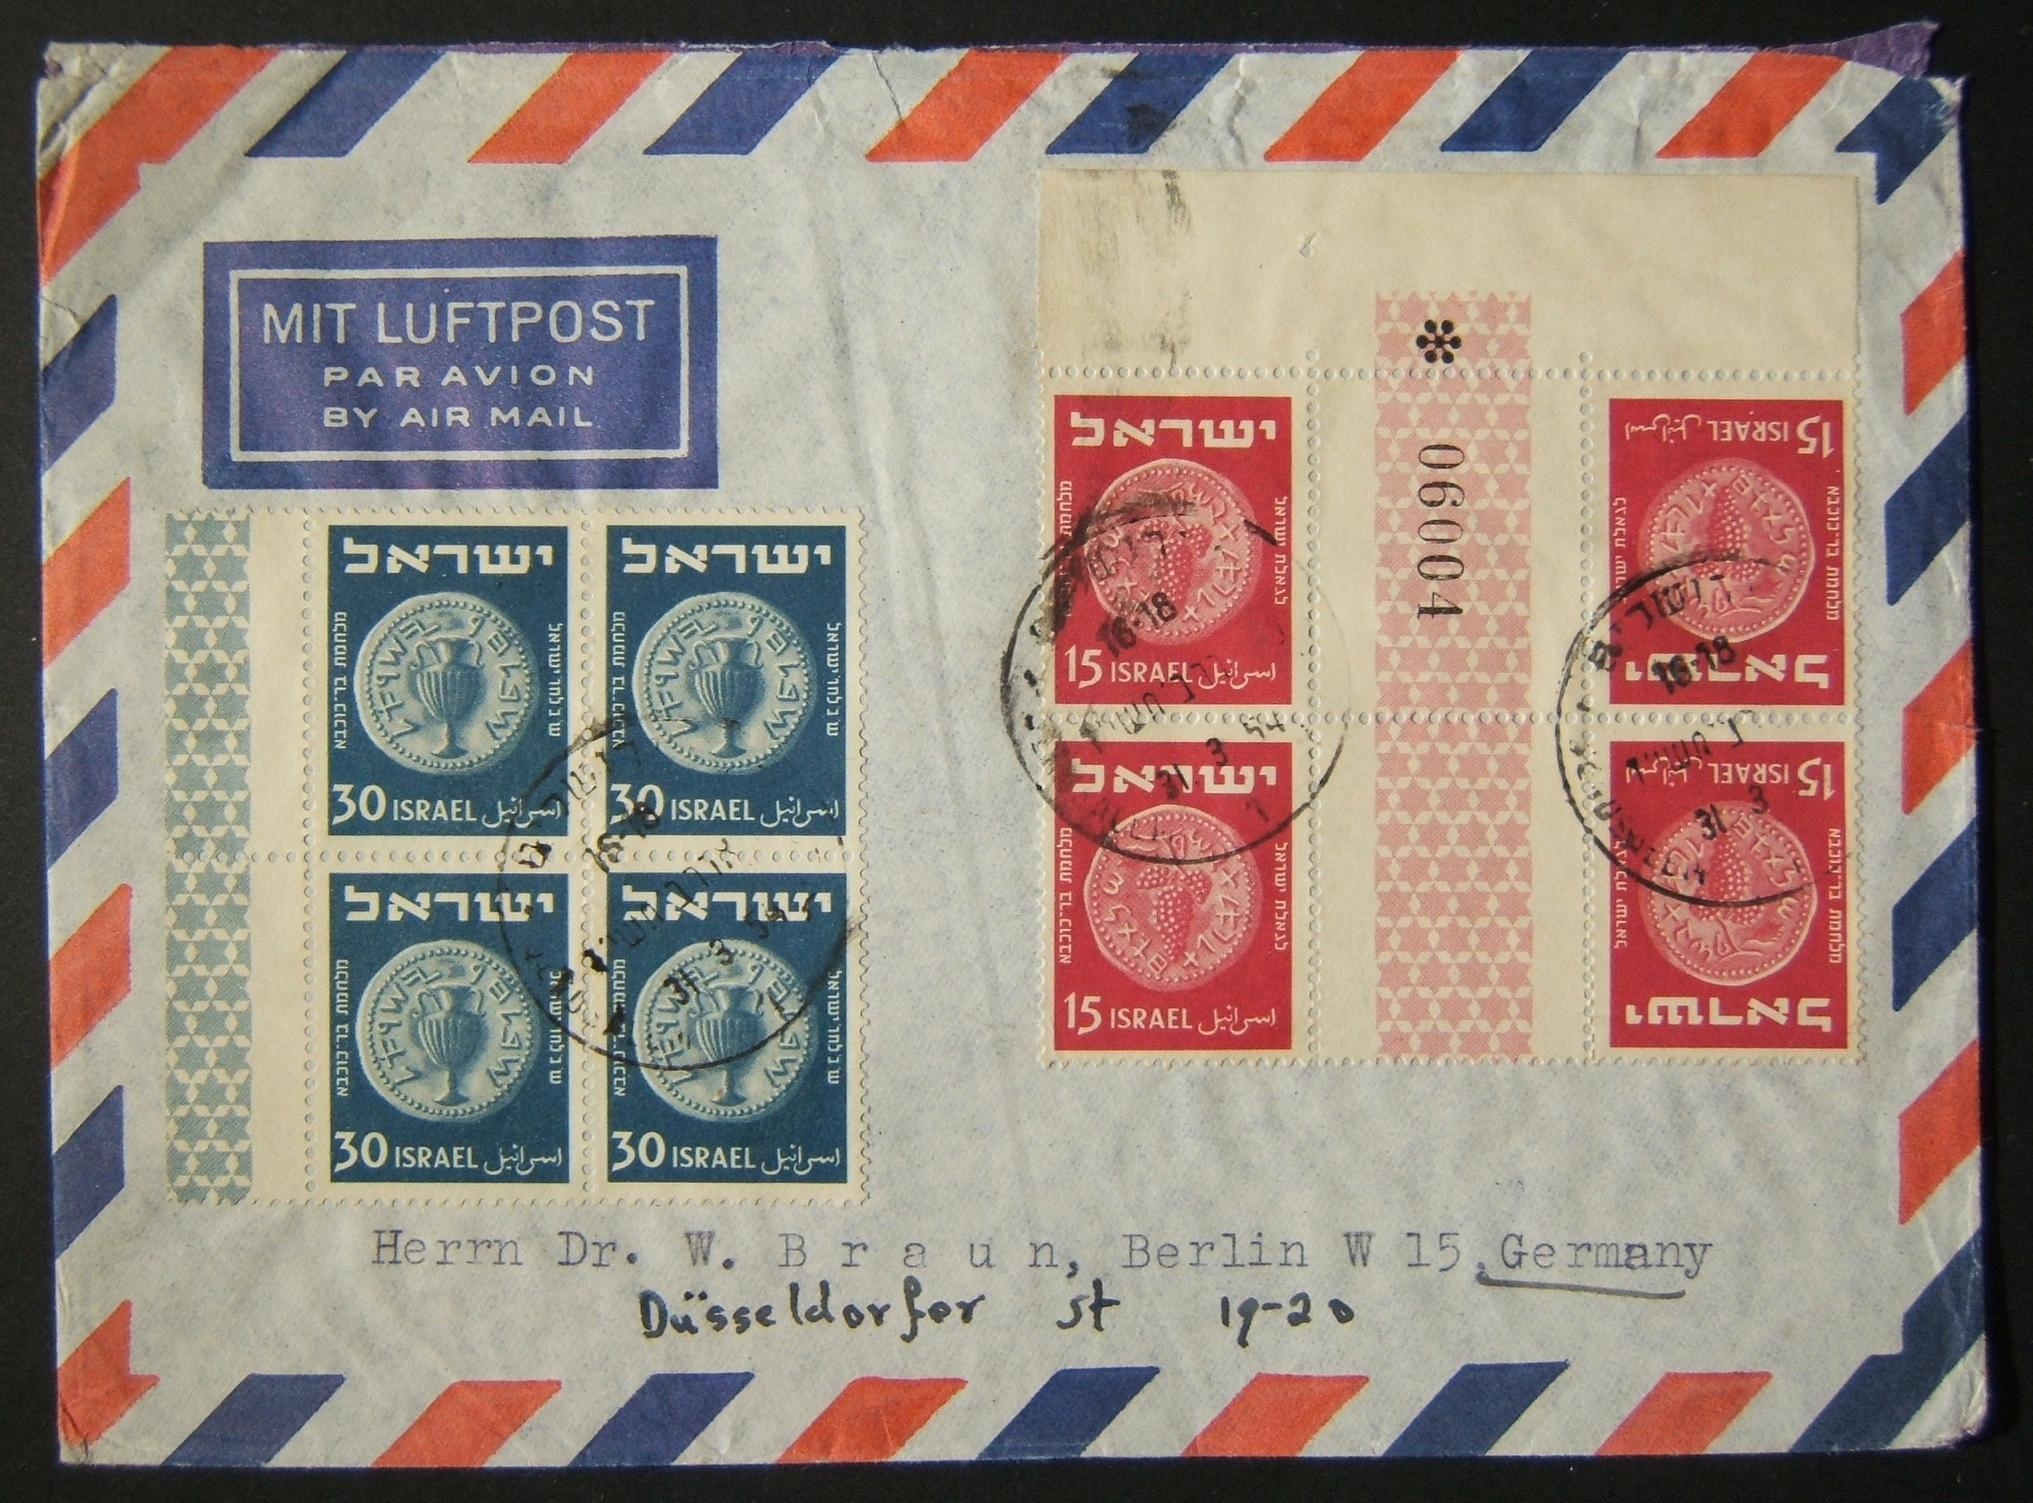 3/1954 300Pr franked airmail to Germany using 4x color 3rd Coinage stamp blocks